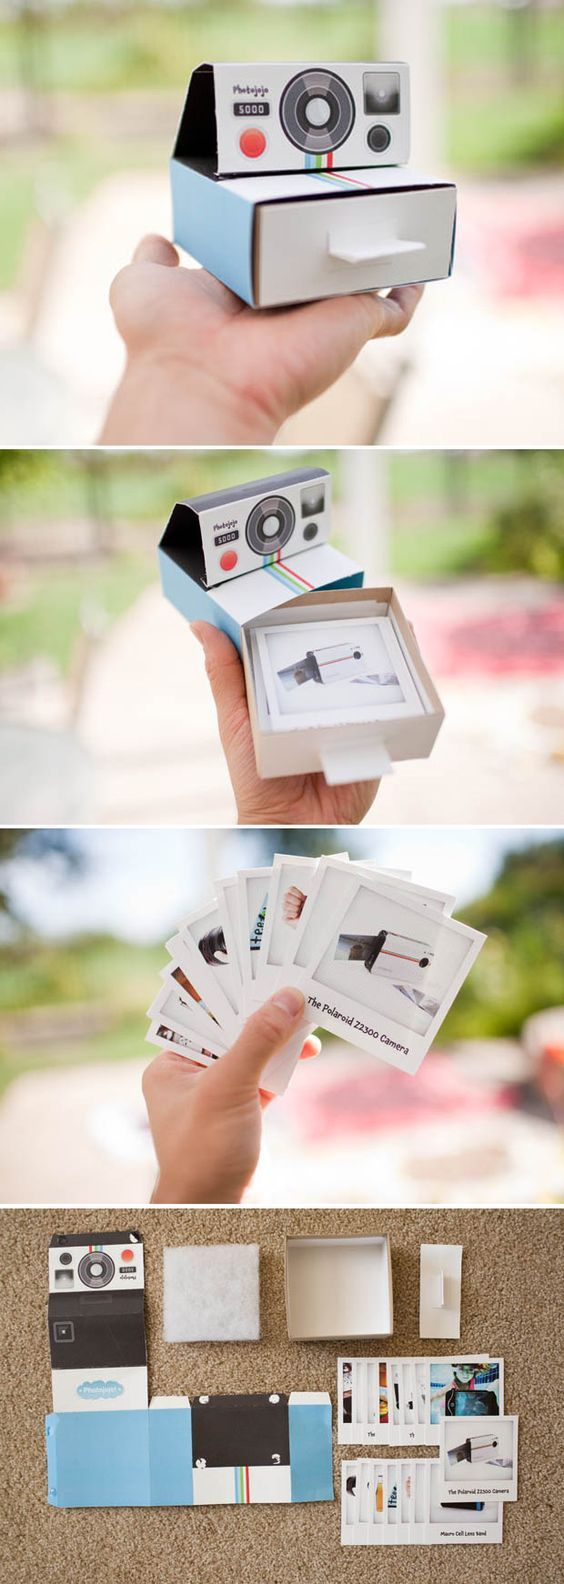 Creative promotional poloroid mailer from Photojojo.: